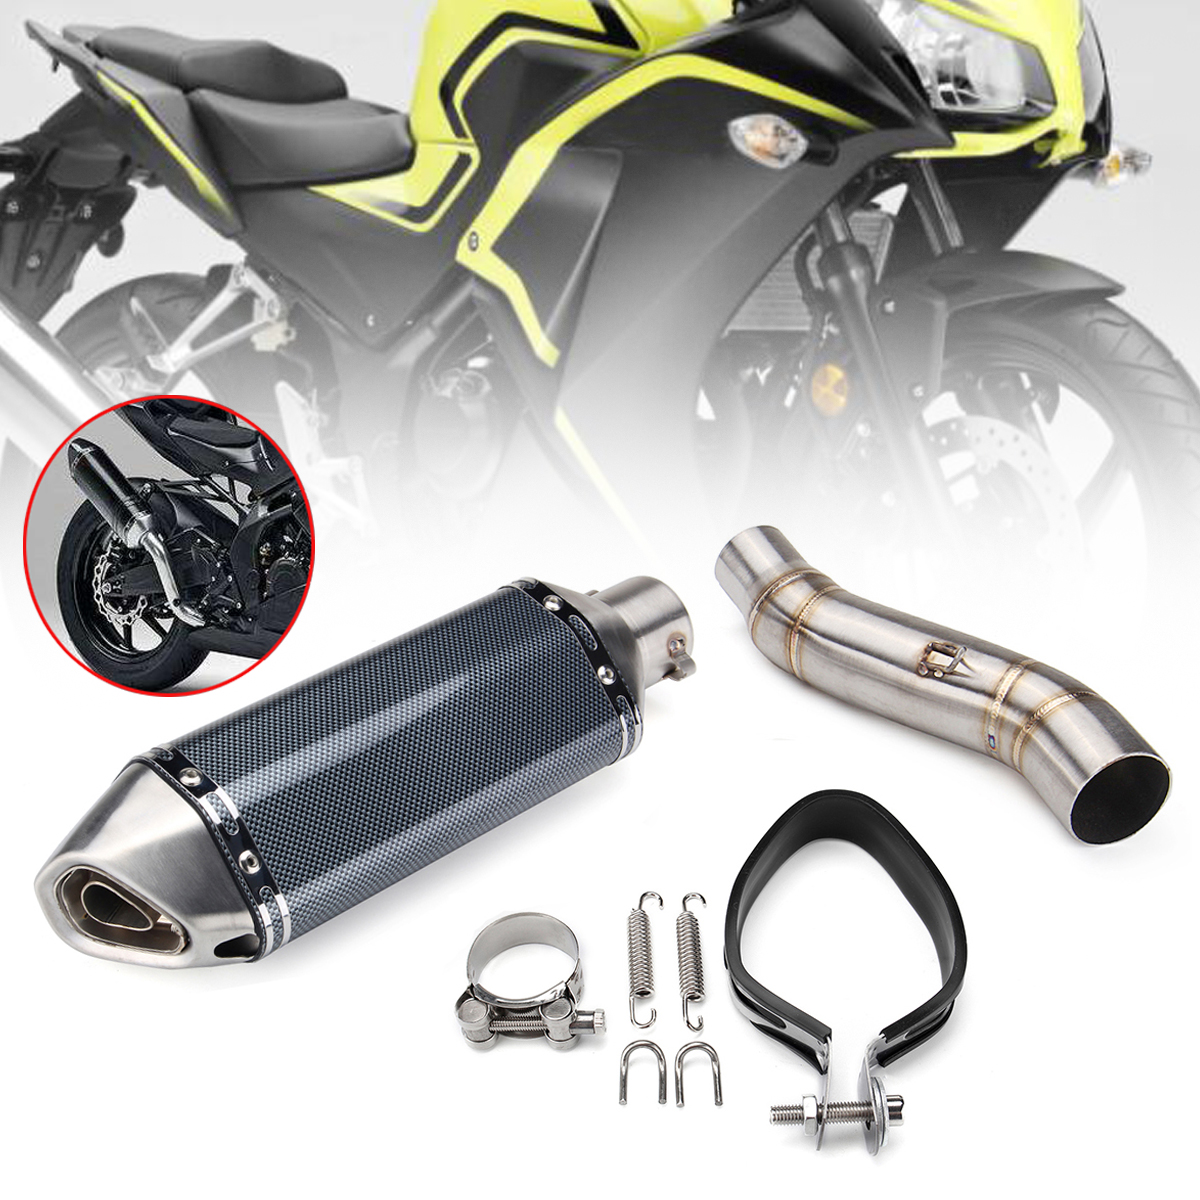 цена 51mm Motorcycle Exhaust Muffler Slip On Middle Pipe For Honda CBR300R CB300F Mid Link Pipe Pluse Exhaust Pipe Stainless Steel онлайн в 2017 году